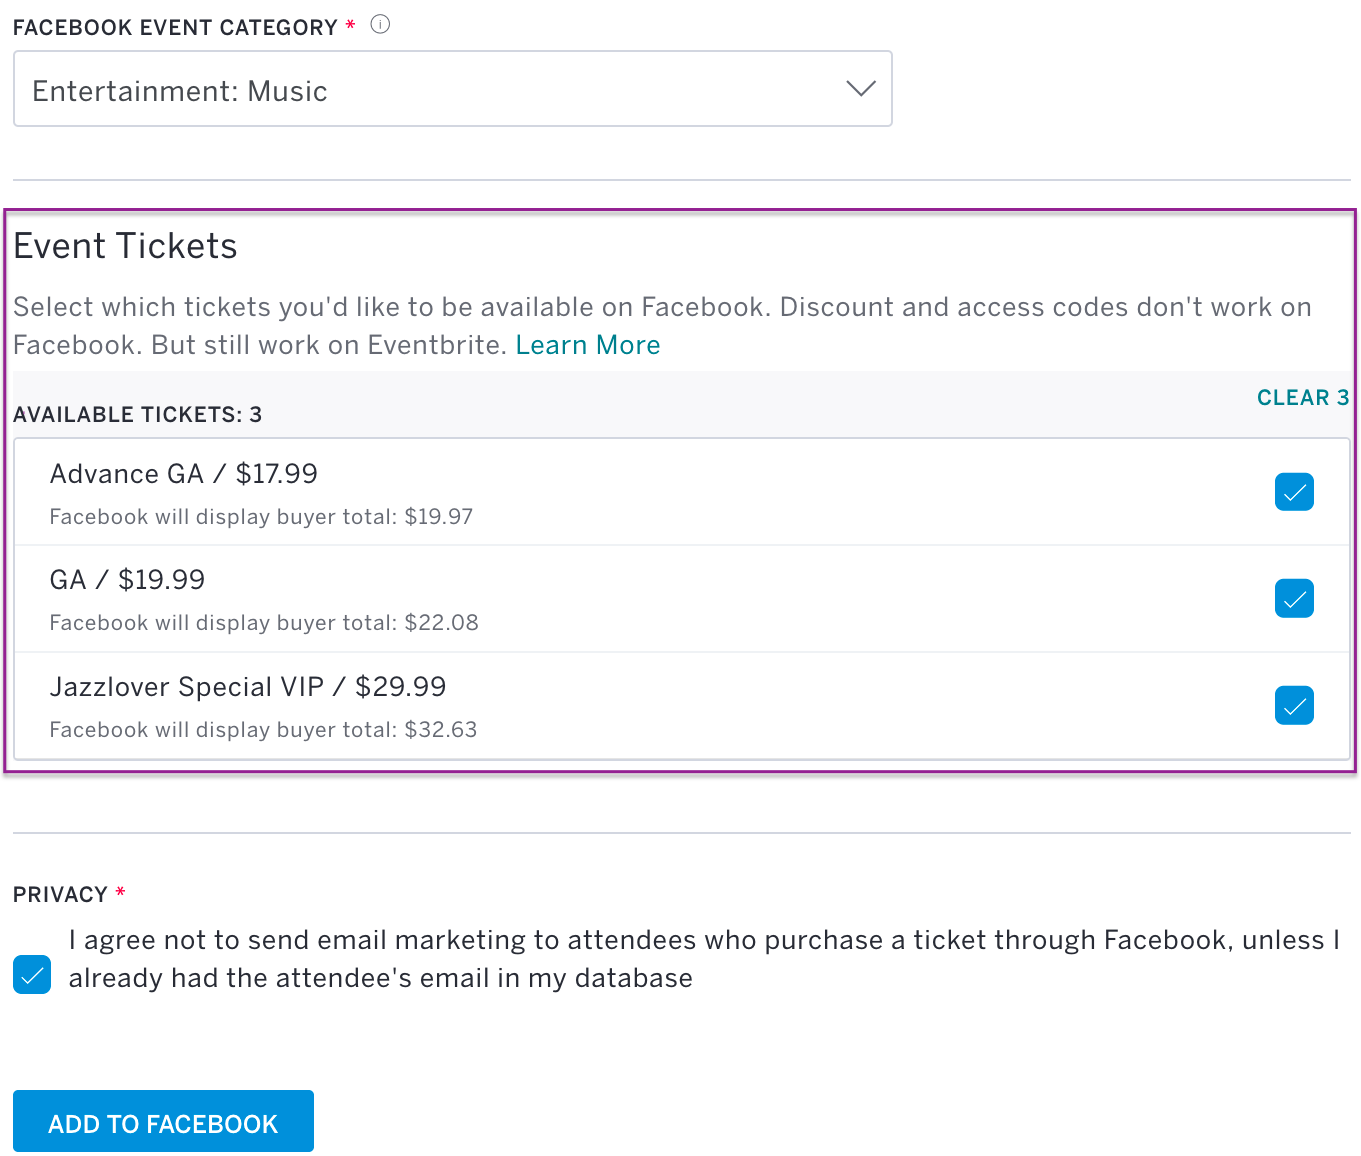 Select A Ticket Type To Promote On Facebook